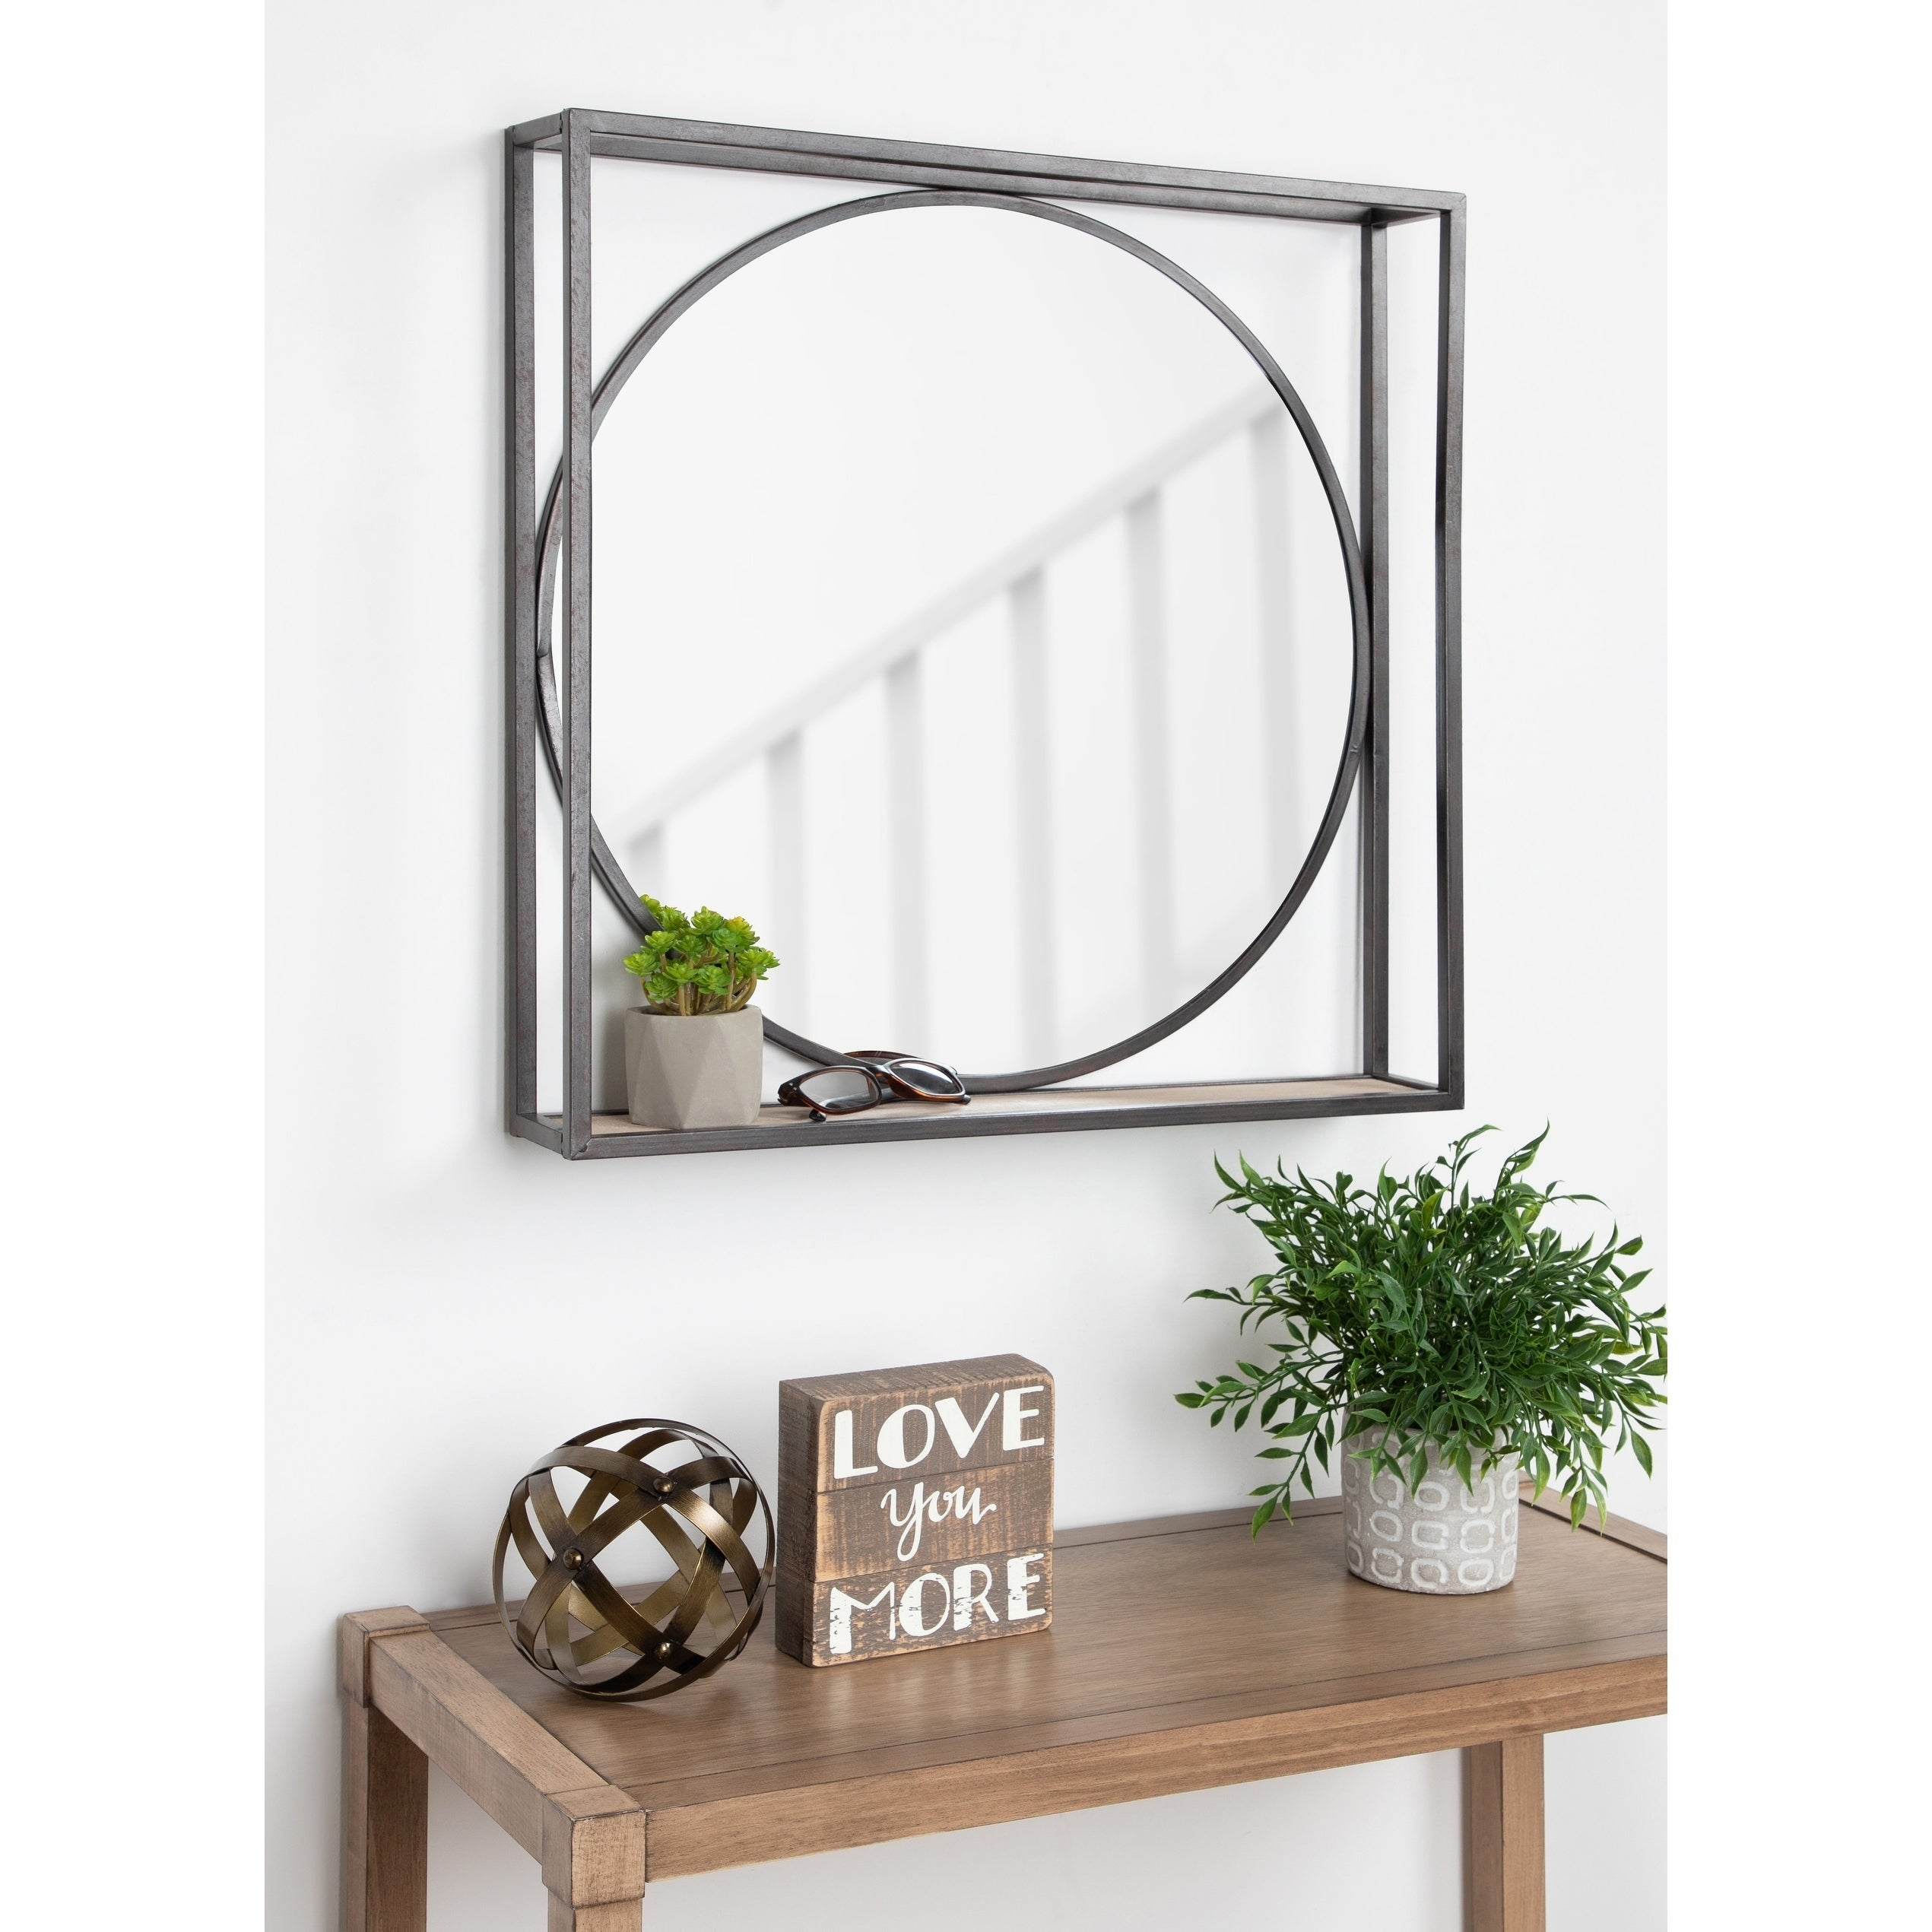 Shop Kate and Laurel McCauley Decorative Black Metal Mirror with